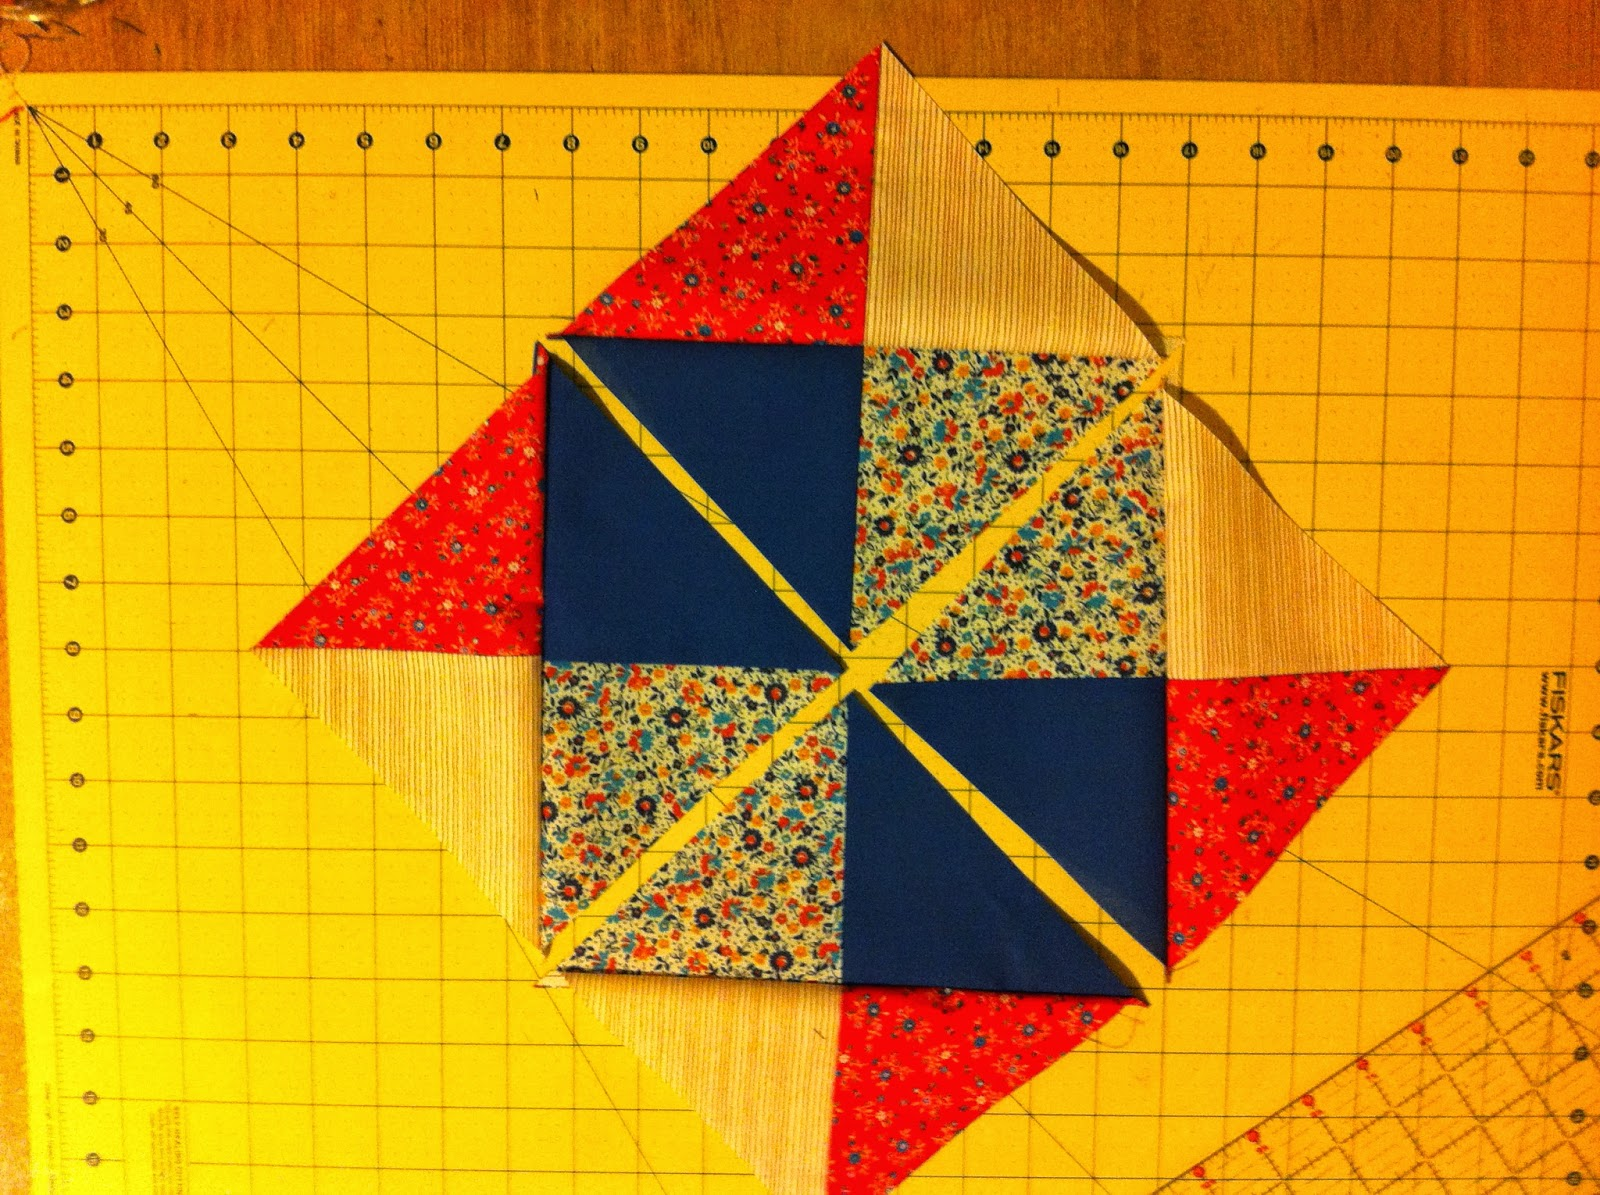 Quilt Patterns Quarter Square Triangles : Sew Preeti Quilts: Quarter Square Triangles (QSTs) Revolutionized